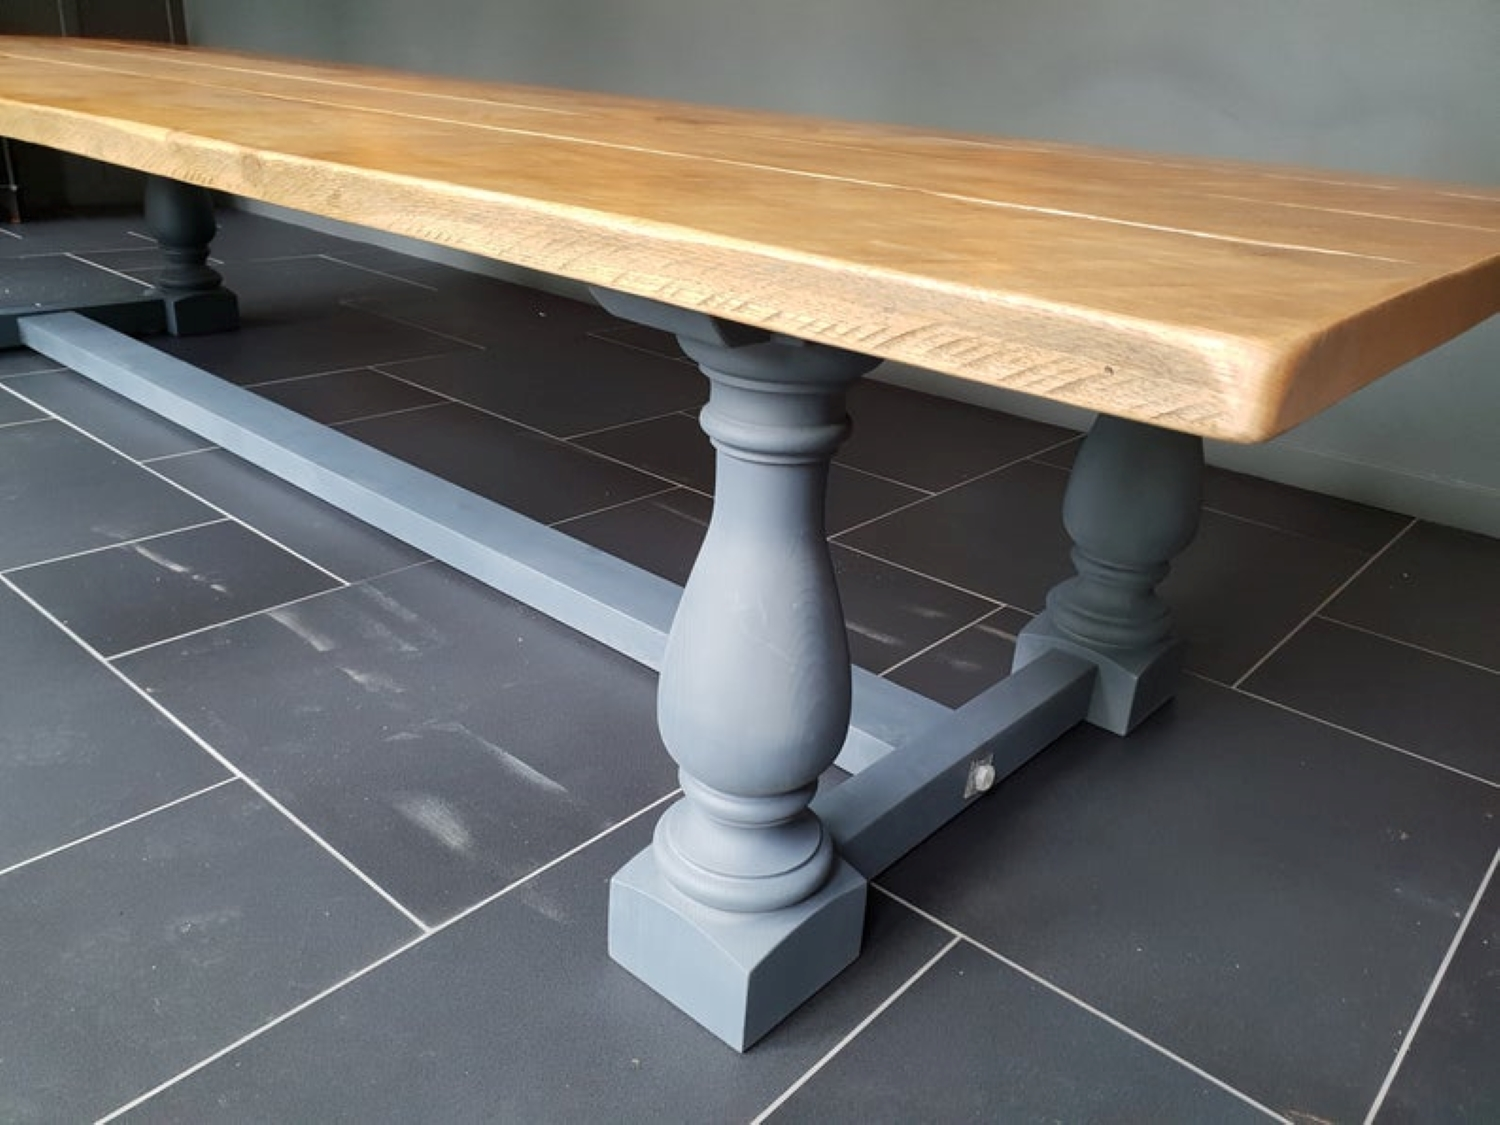 Large Rustic Style Dining Table with Balustrade Legs